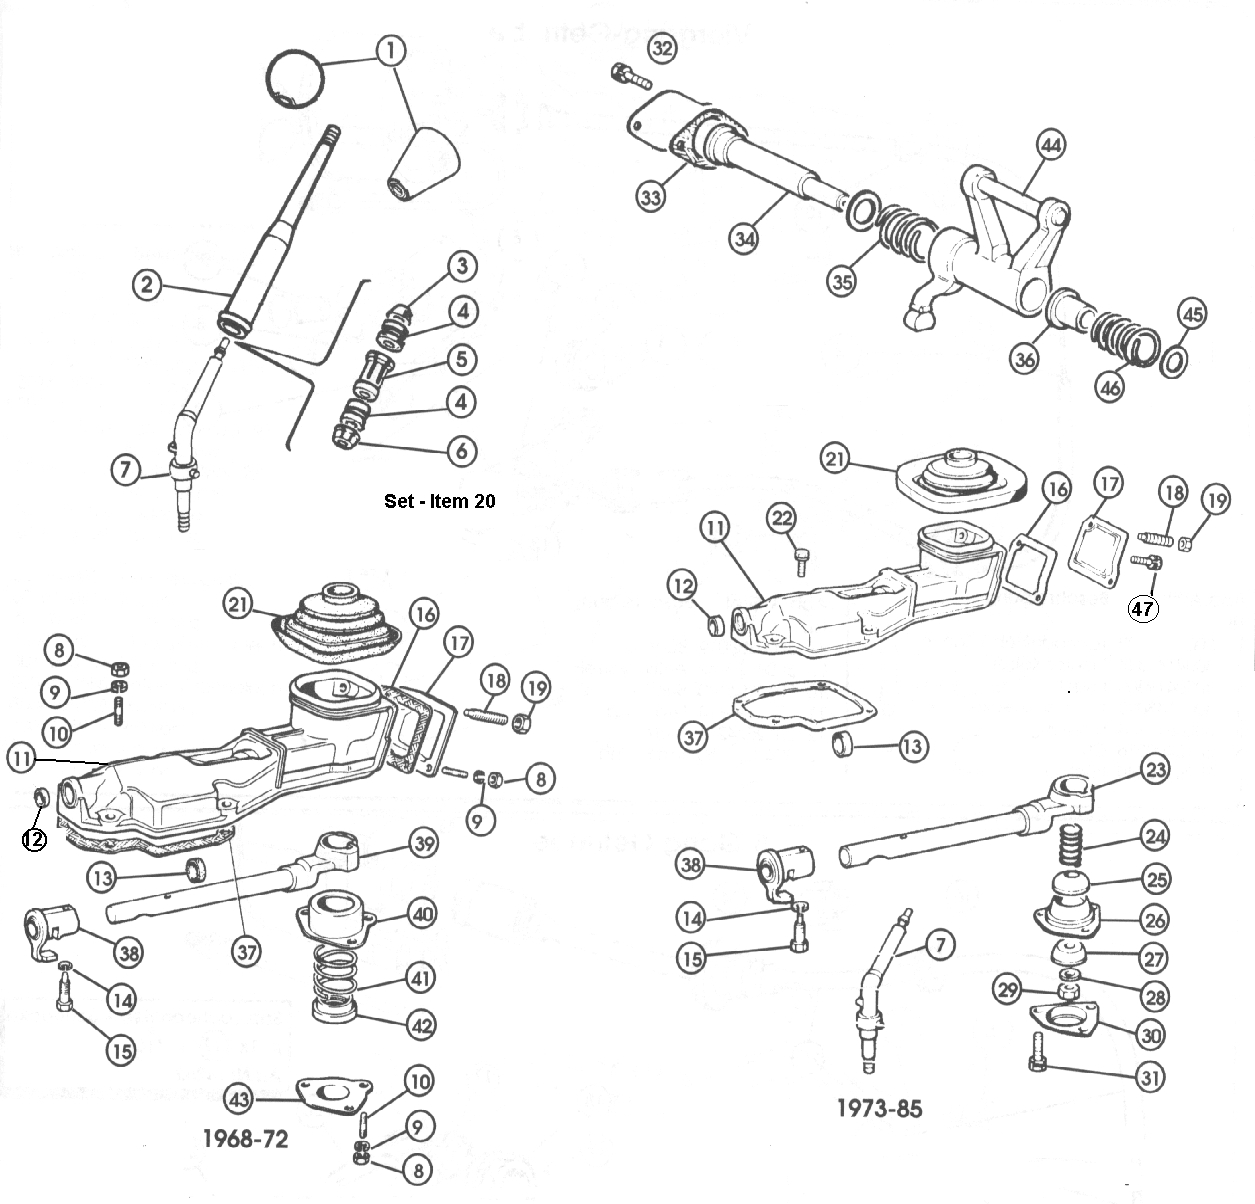 Fiat 124 Gearbox Five Speed Gbox Gear Selection Cont 1 500 Brakes Diagram